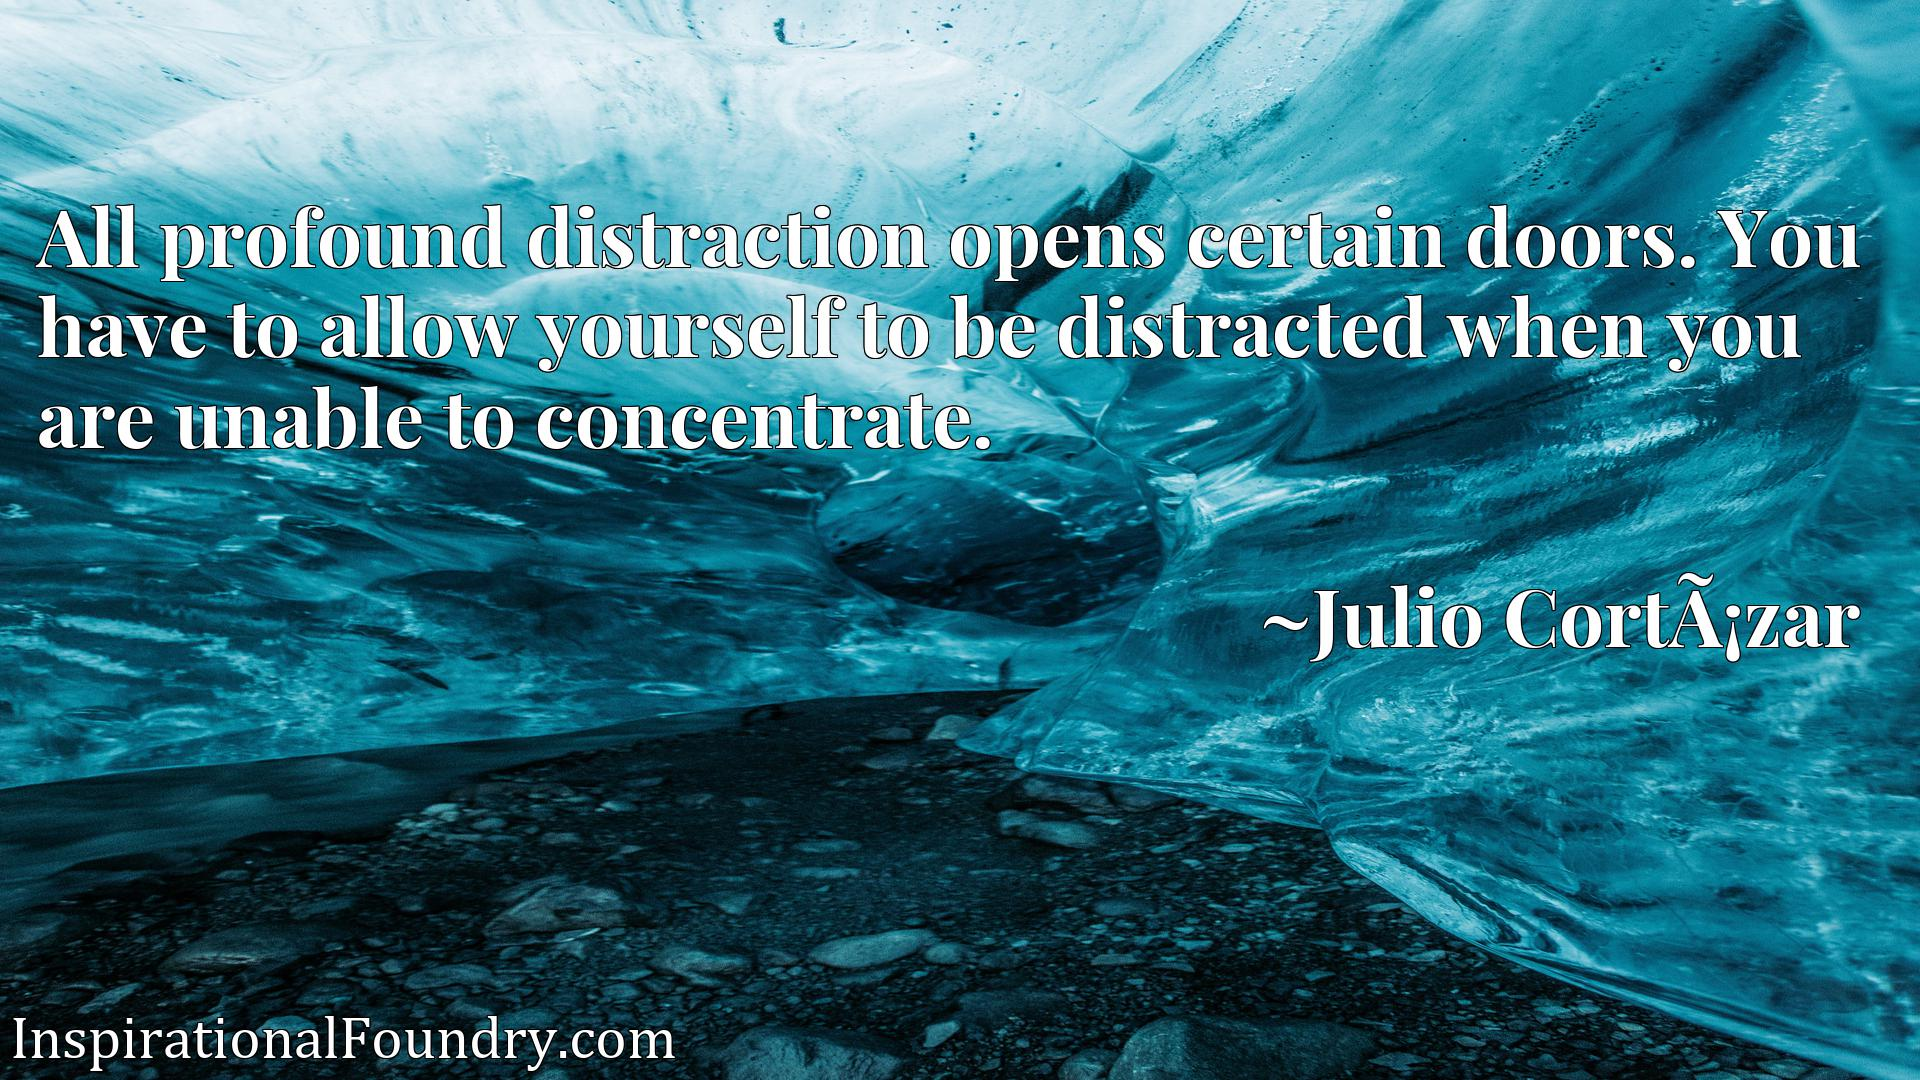 All profound distraction opens certain doors. You have to allow yourself to be distracted when you are unable to concentrate.